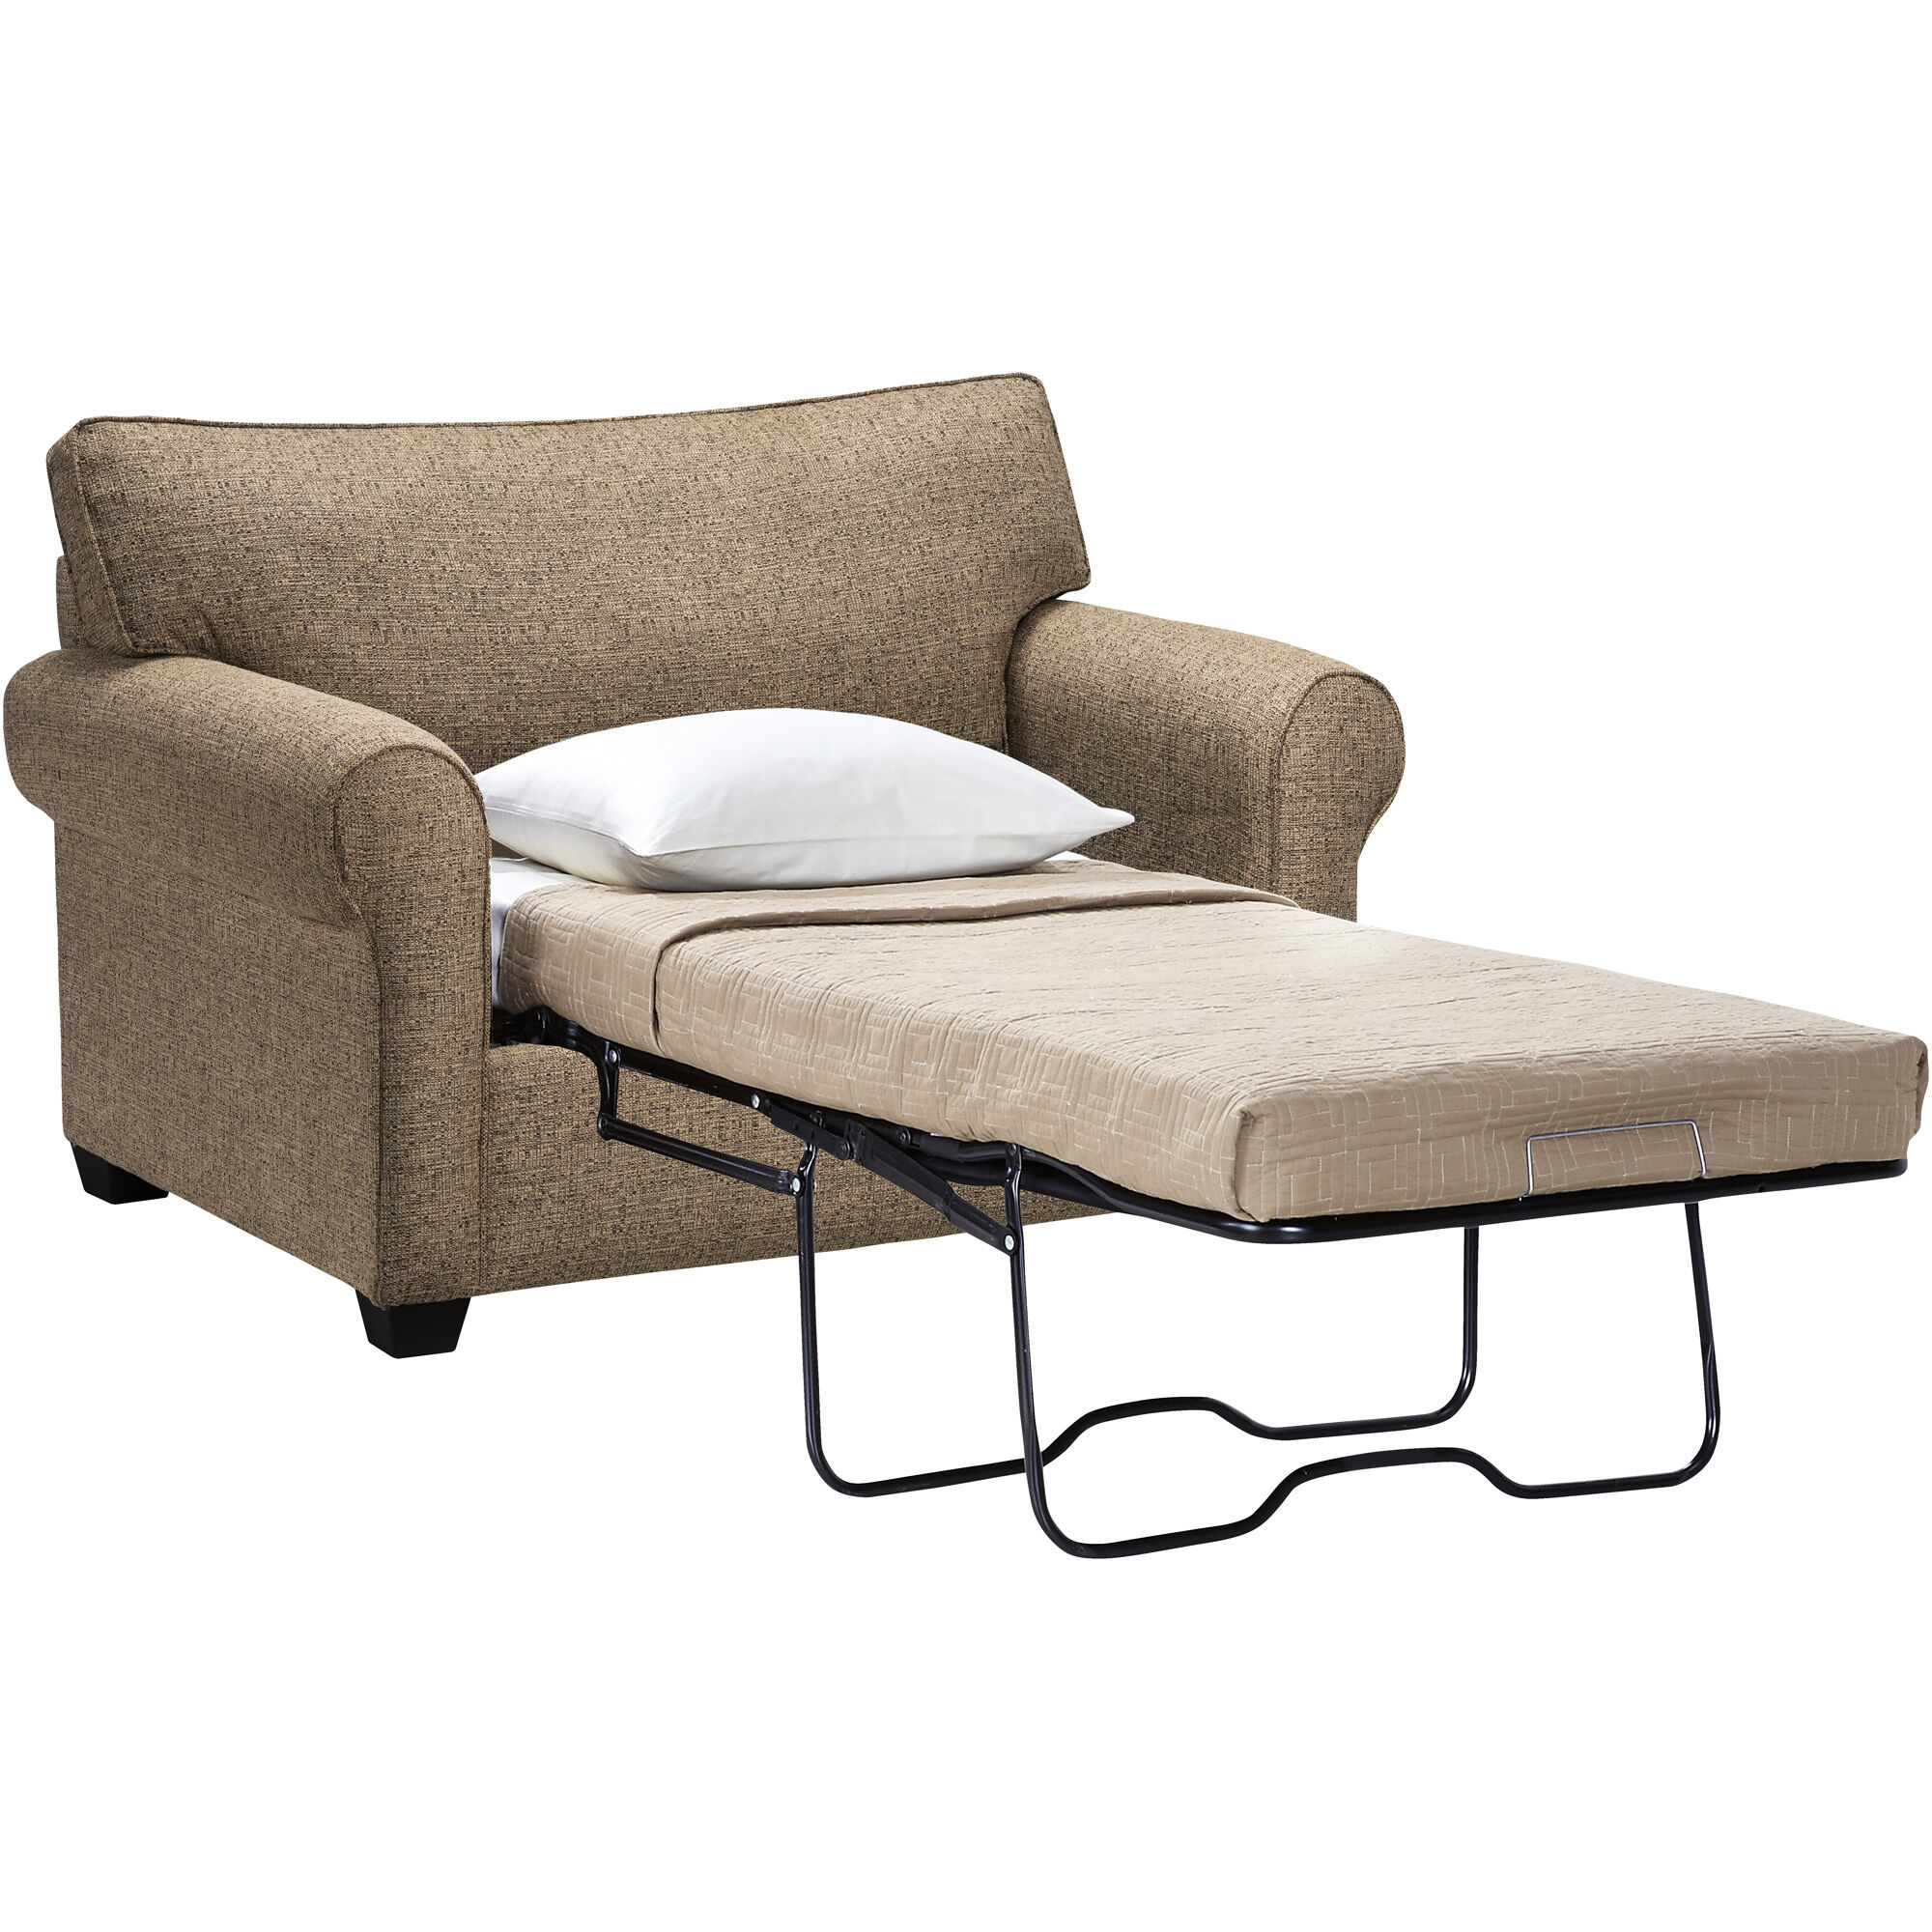 Slumberland Furniture Mesa Tan Twin Sleeper